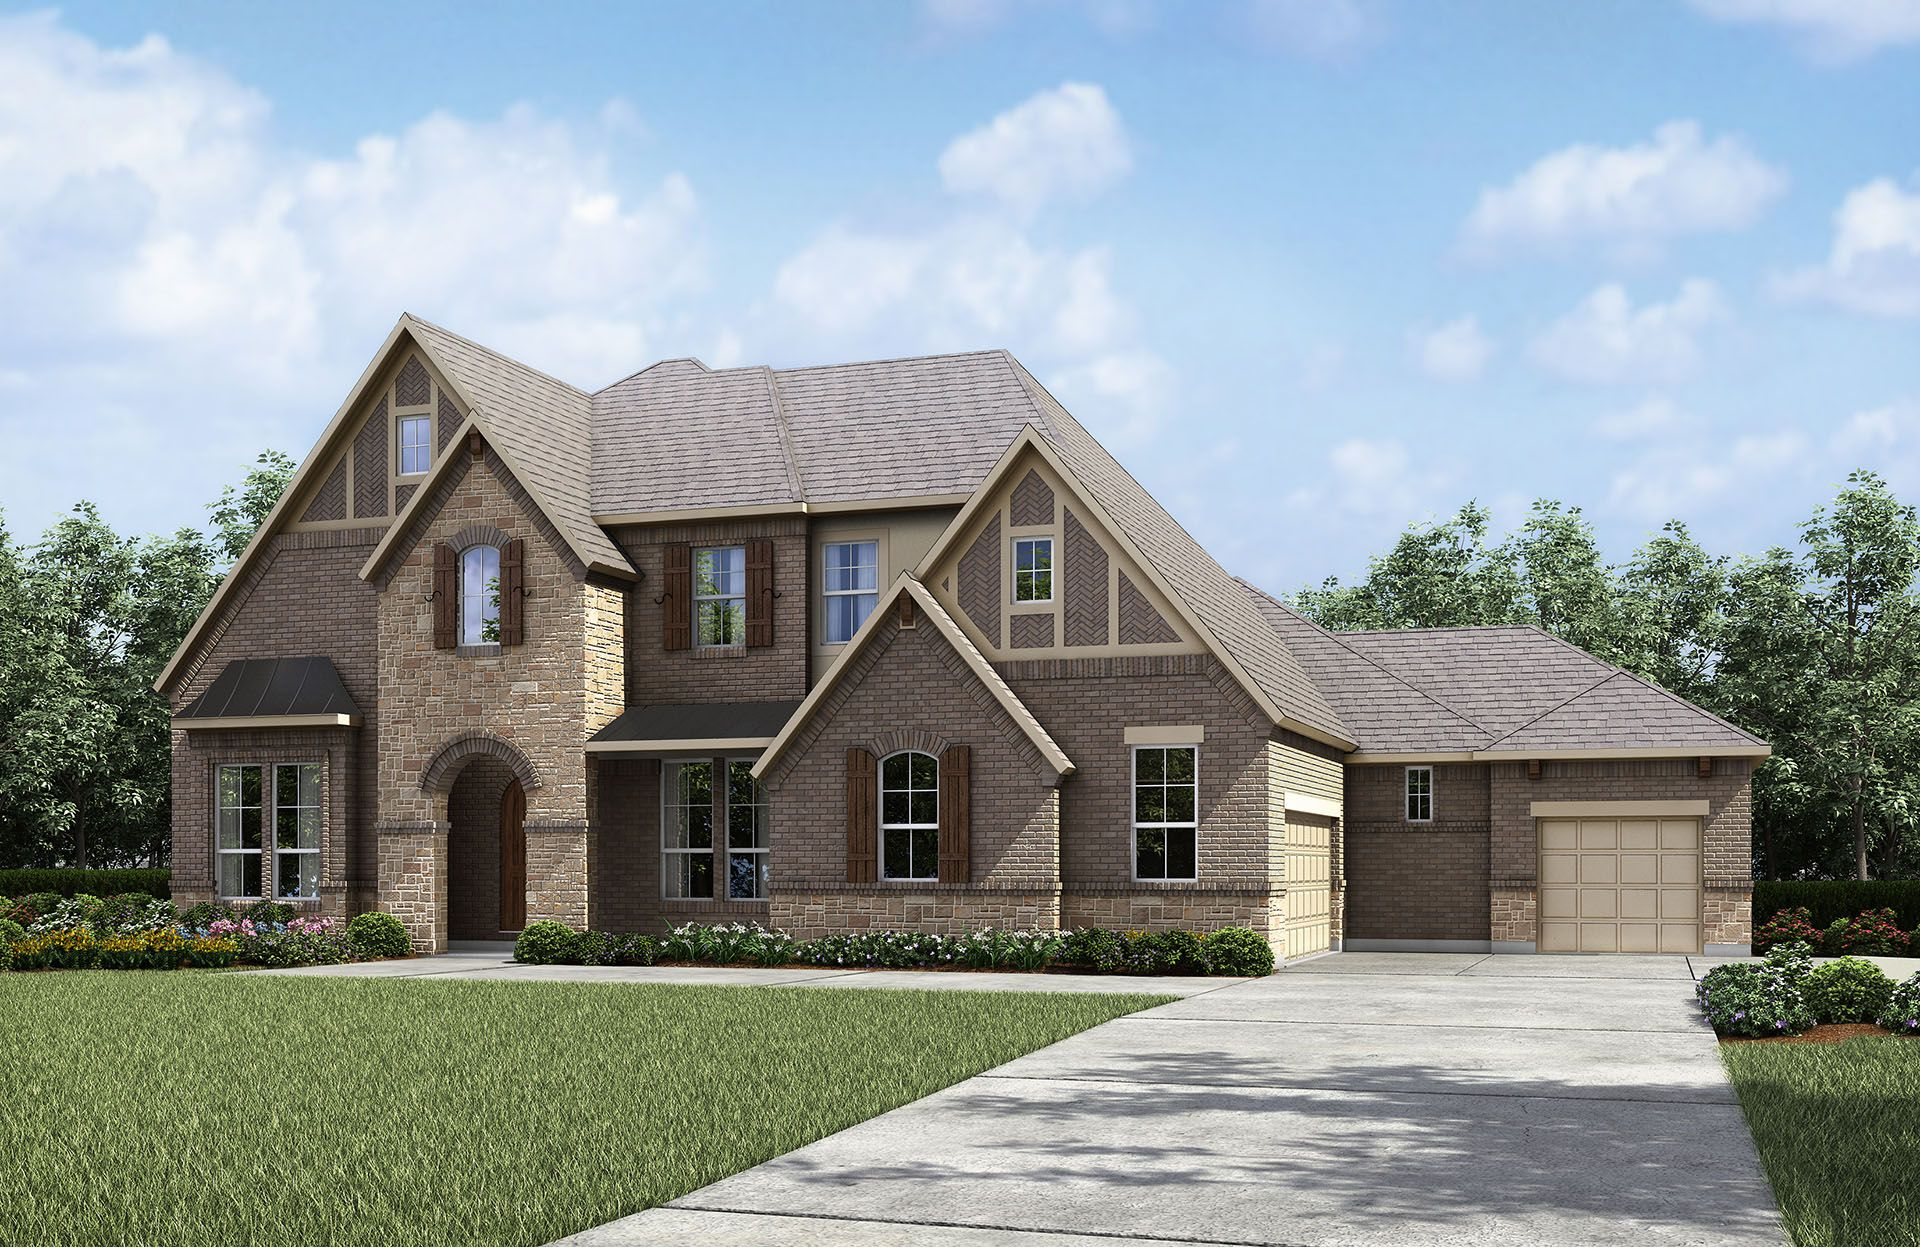 Single Family for Active at Caliterra - Colinas Ii 131 Waters View Court Dripping Springs, Texas 78620 United States